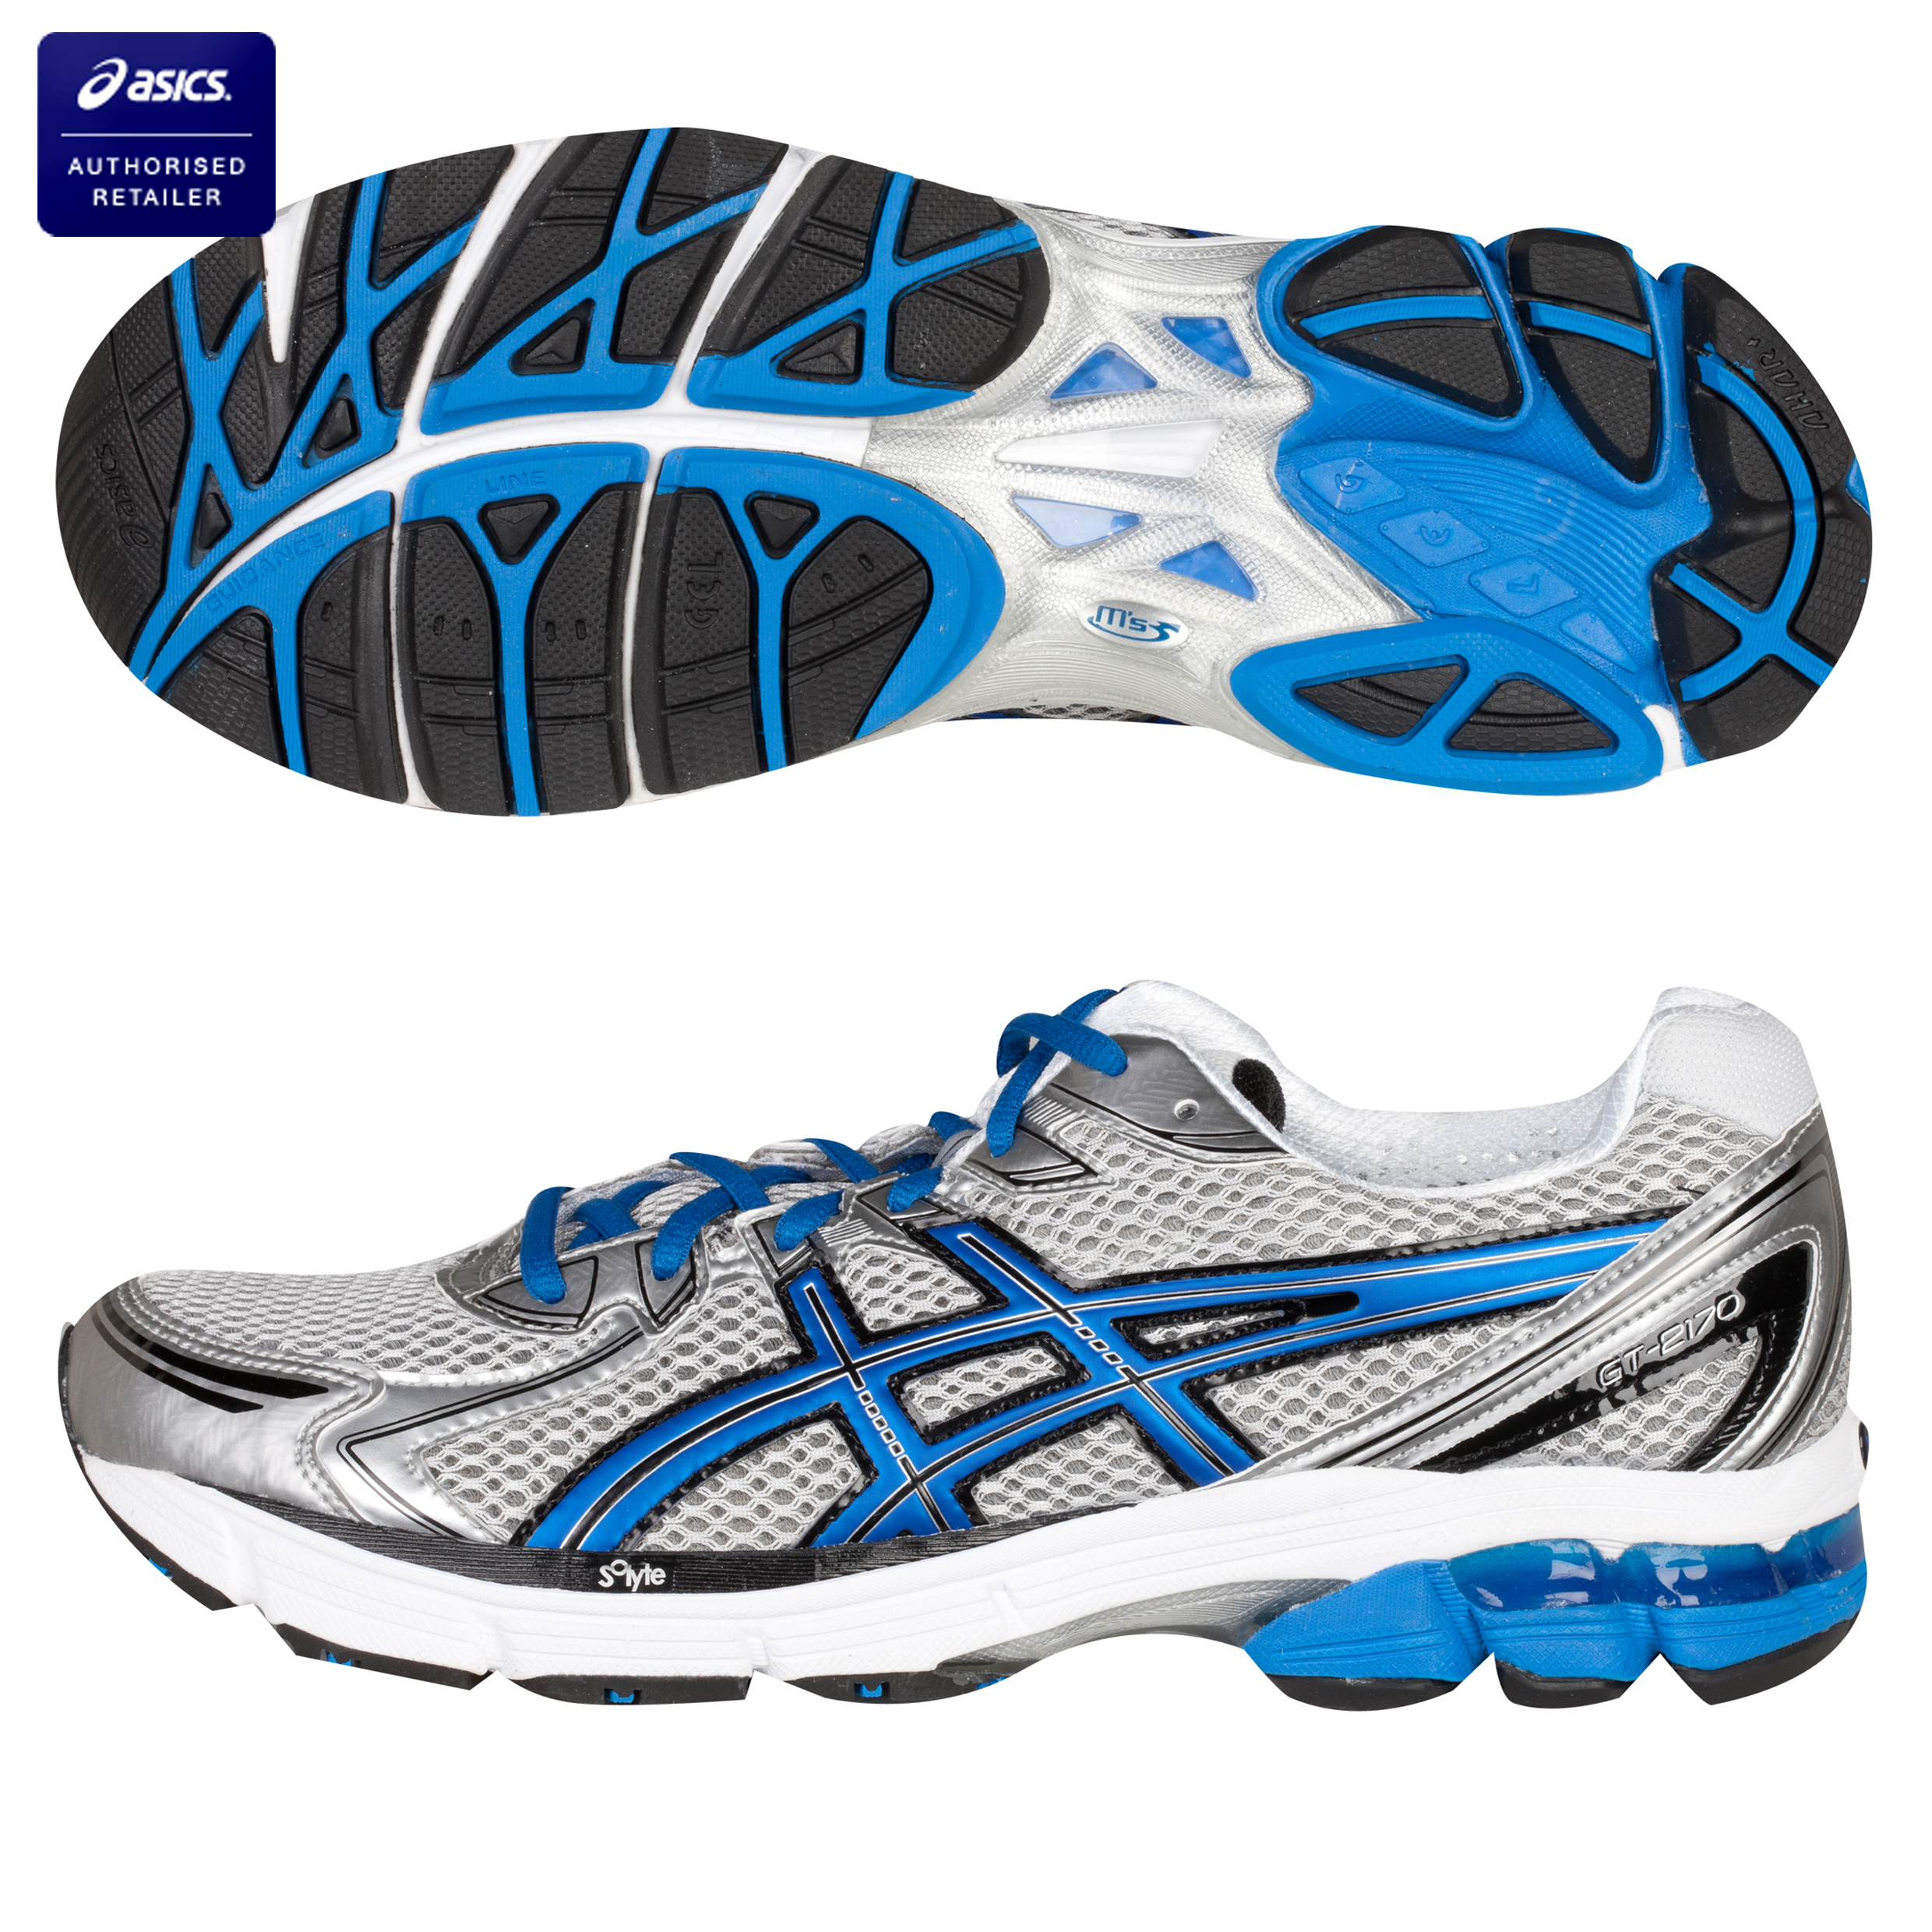 Asics GT-2170 Running Trainers - Lightning/Electric Blue/Black